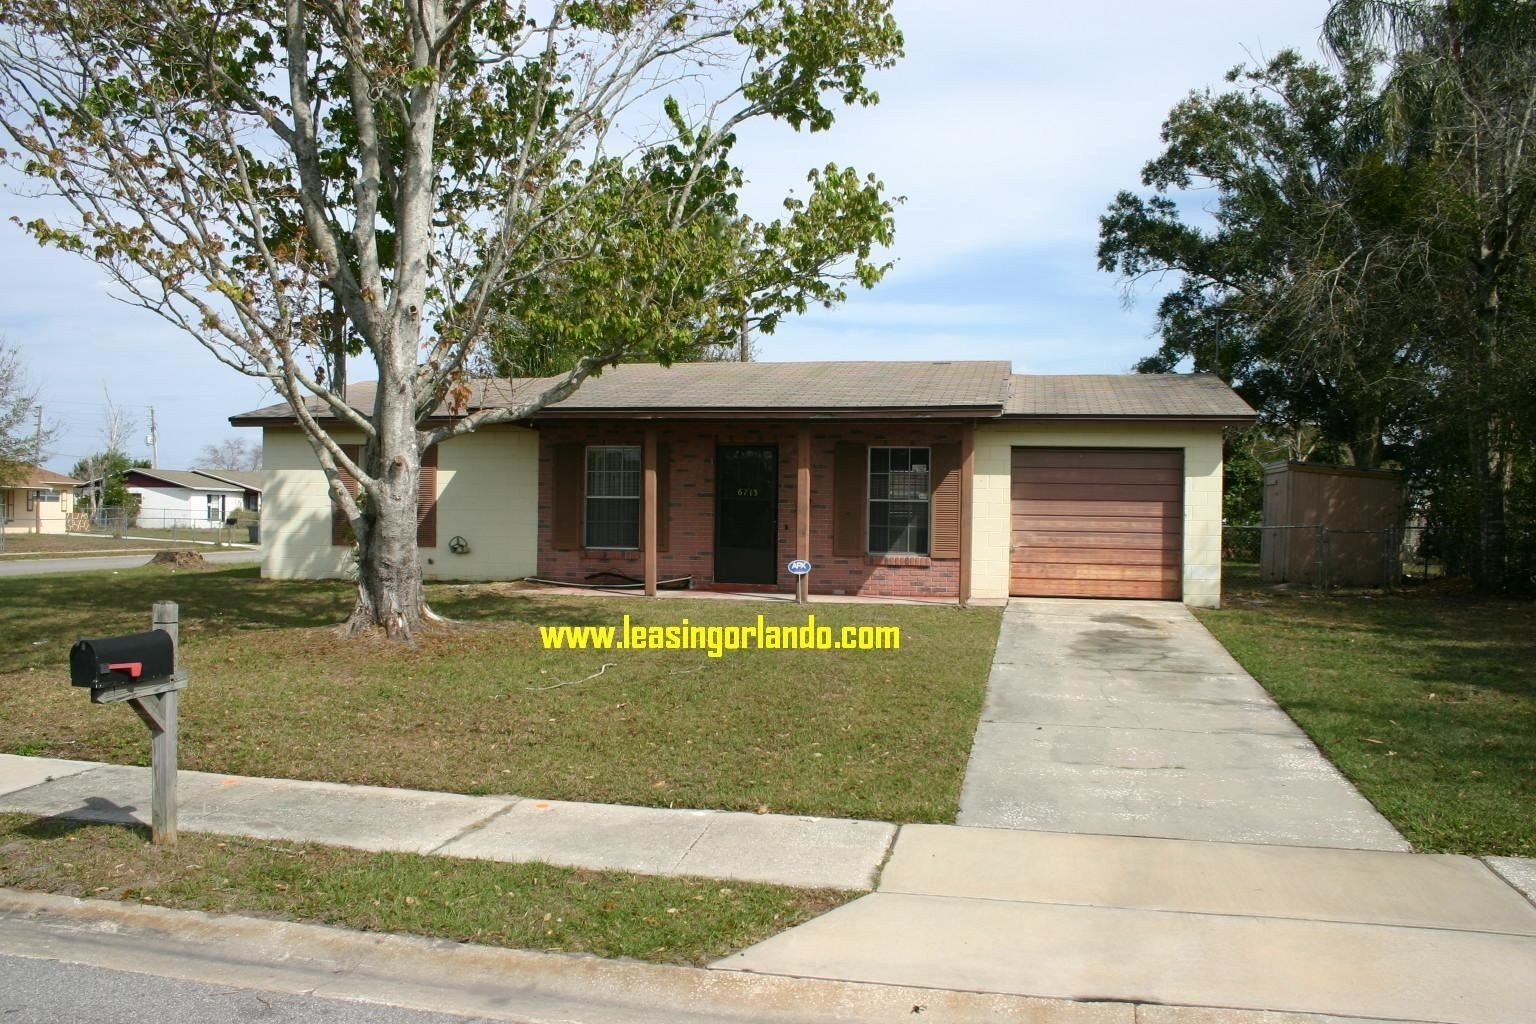 Best 6713 Lodge Ave Orlando Fl 32809 3 Bedroom House For Rent With Pictures